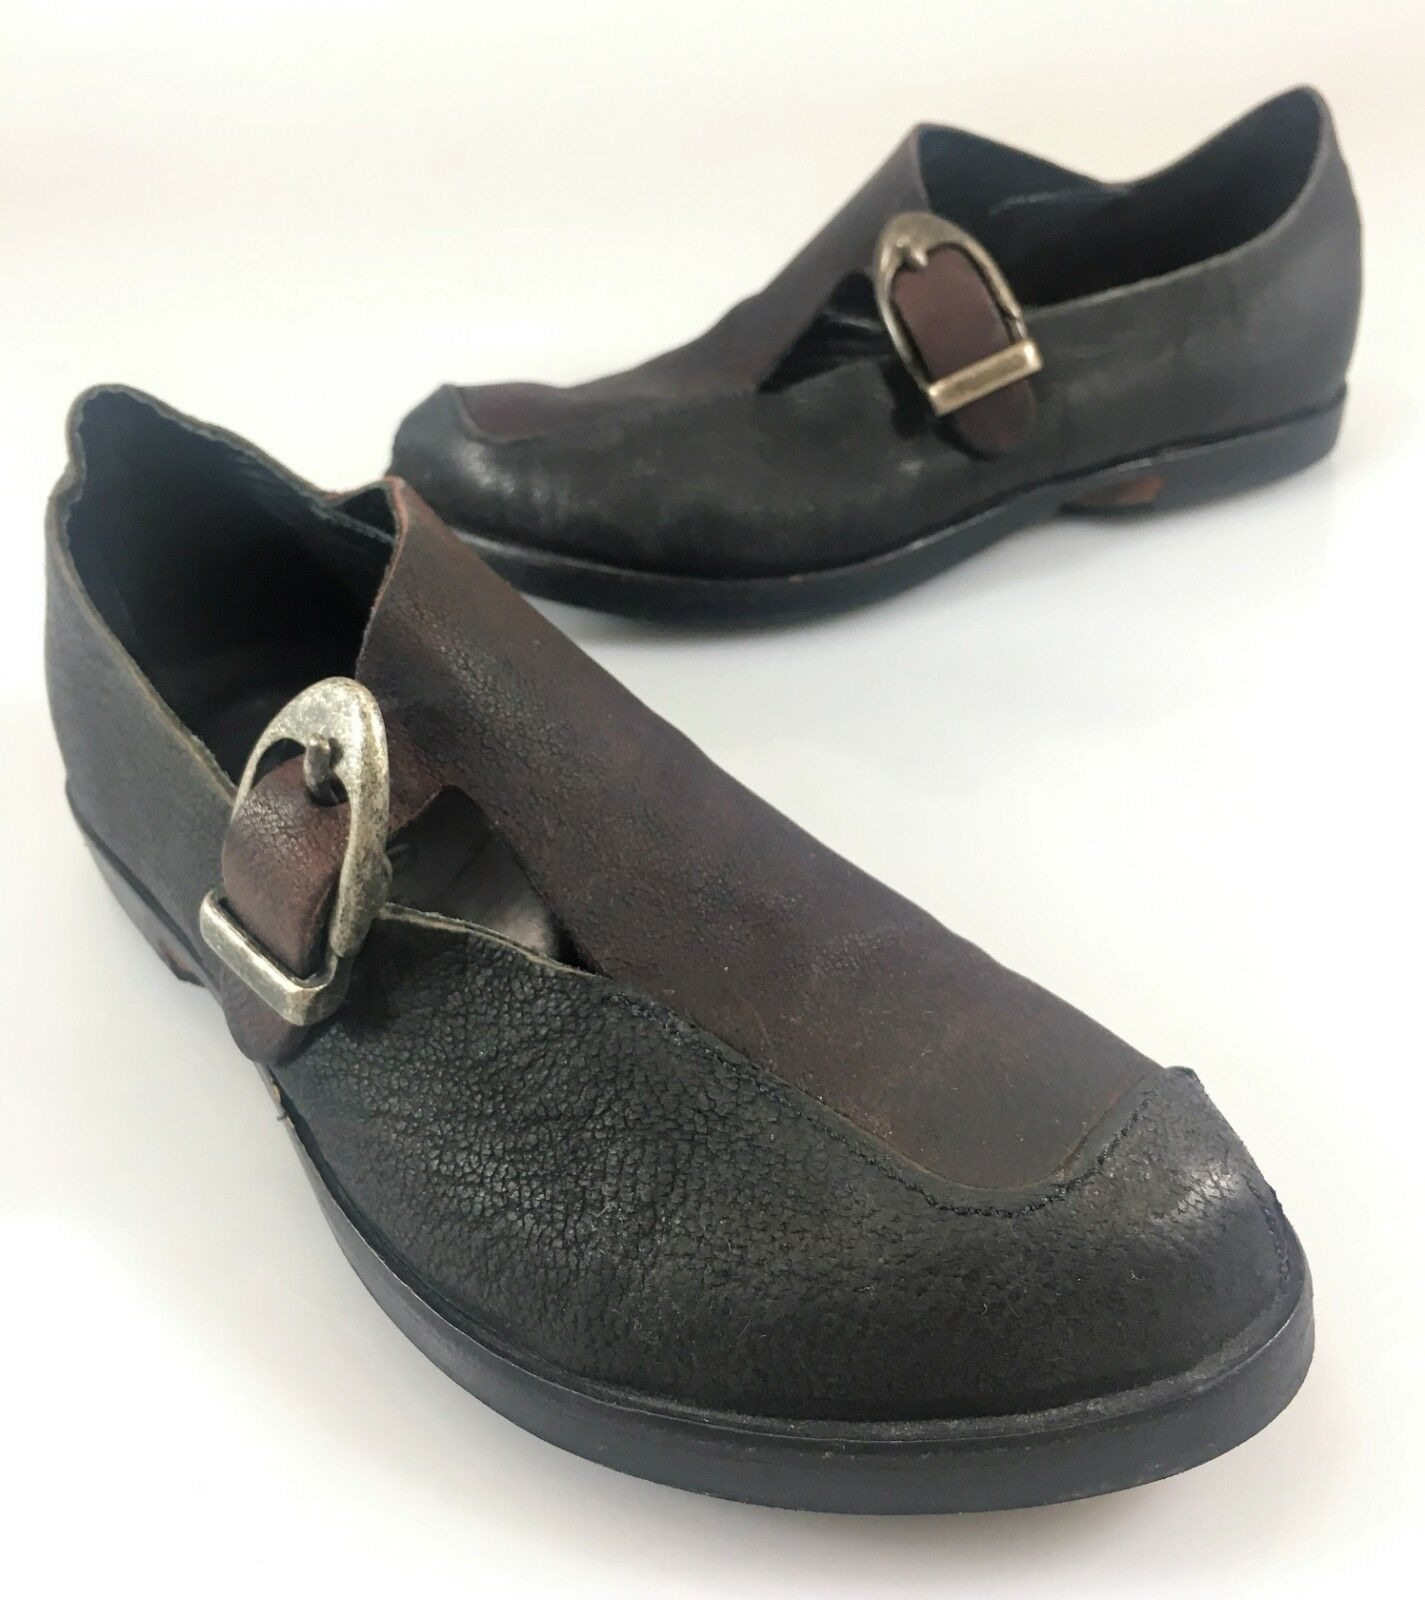 Cydwoq Womens 35EU 5US Black Burgundy Leather Loafers shoes Handmade in USA